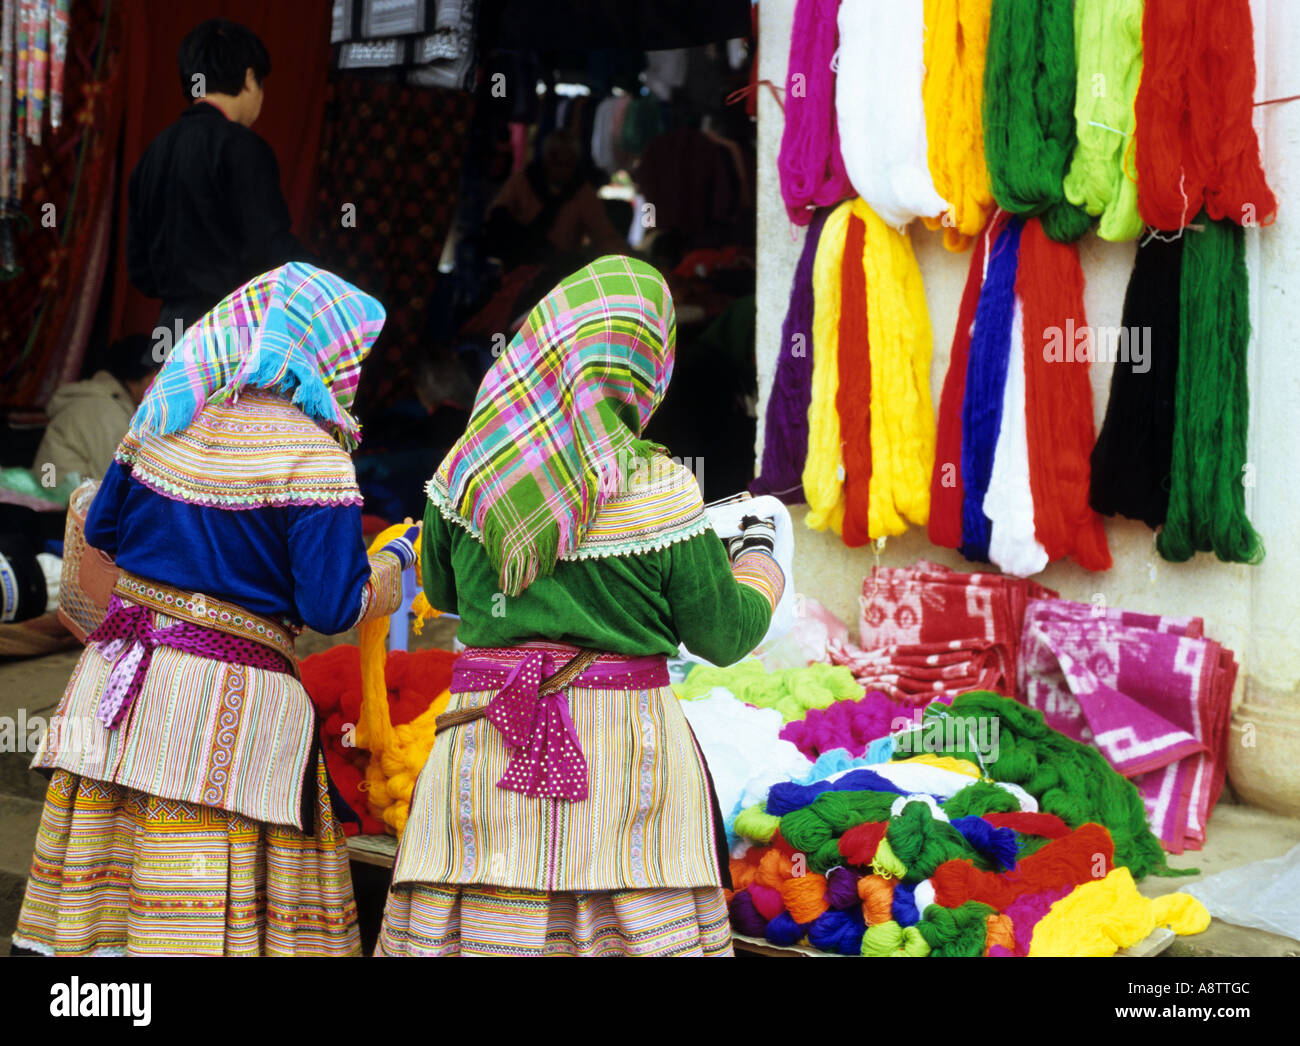 Two Flower Hmong women looking at brightly coloured wools at the Sunday market, Bac Ha, NW Viet Nam Stock Photo